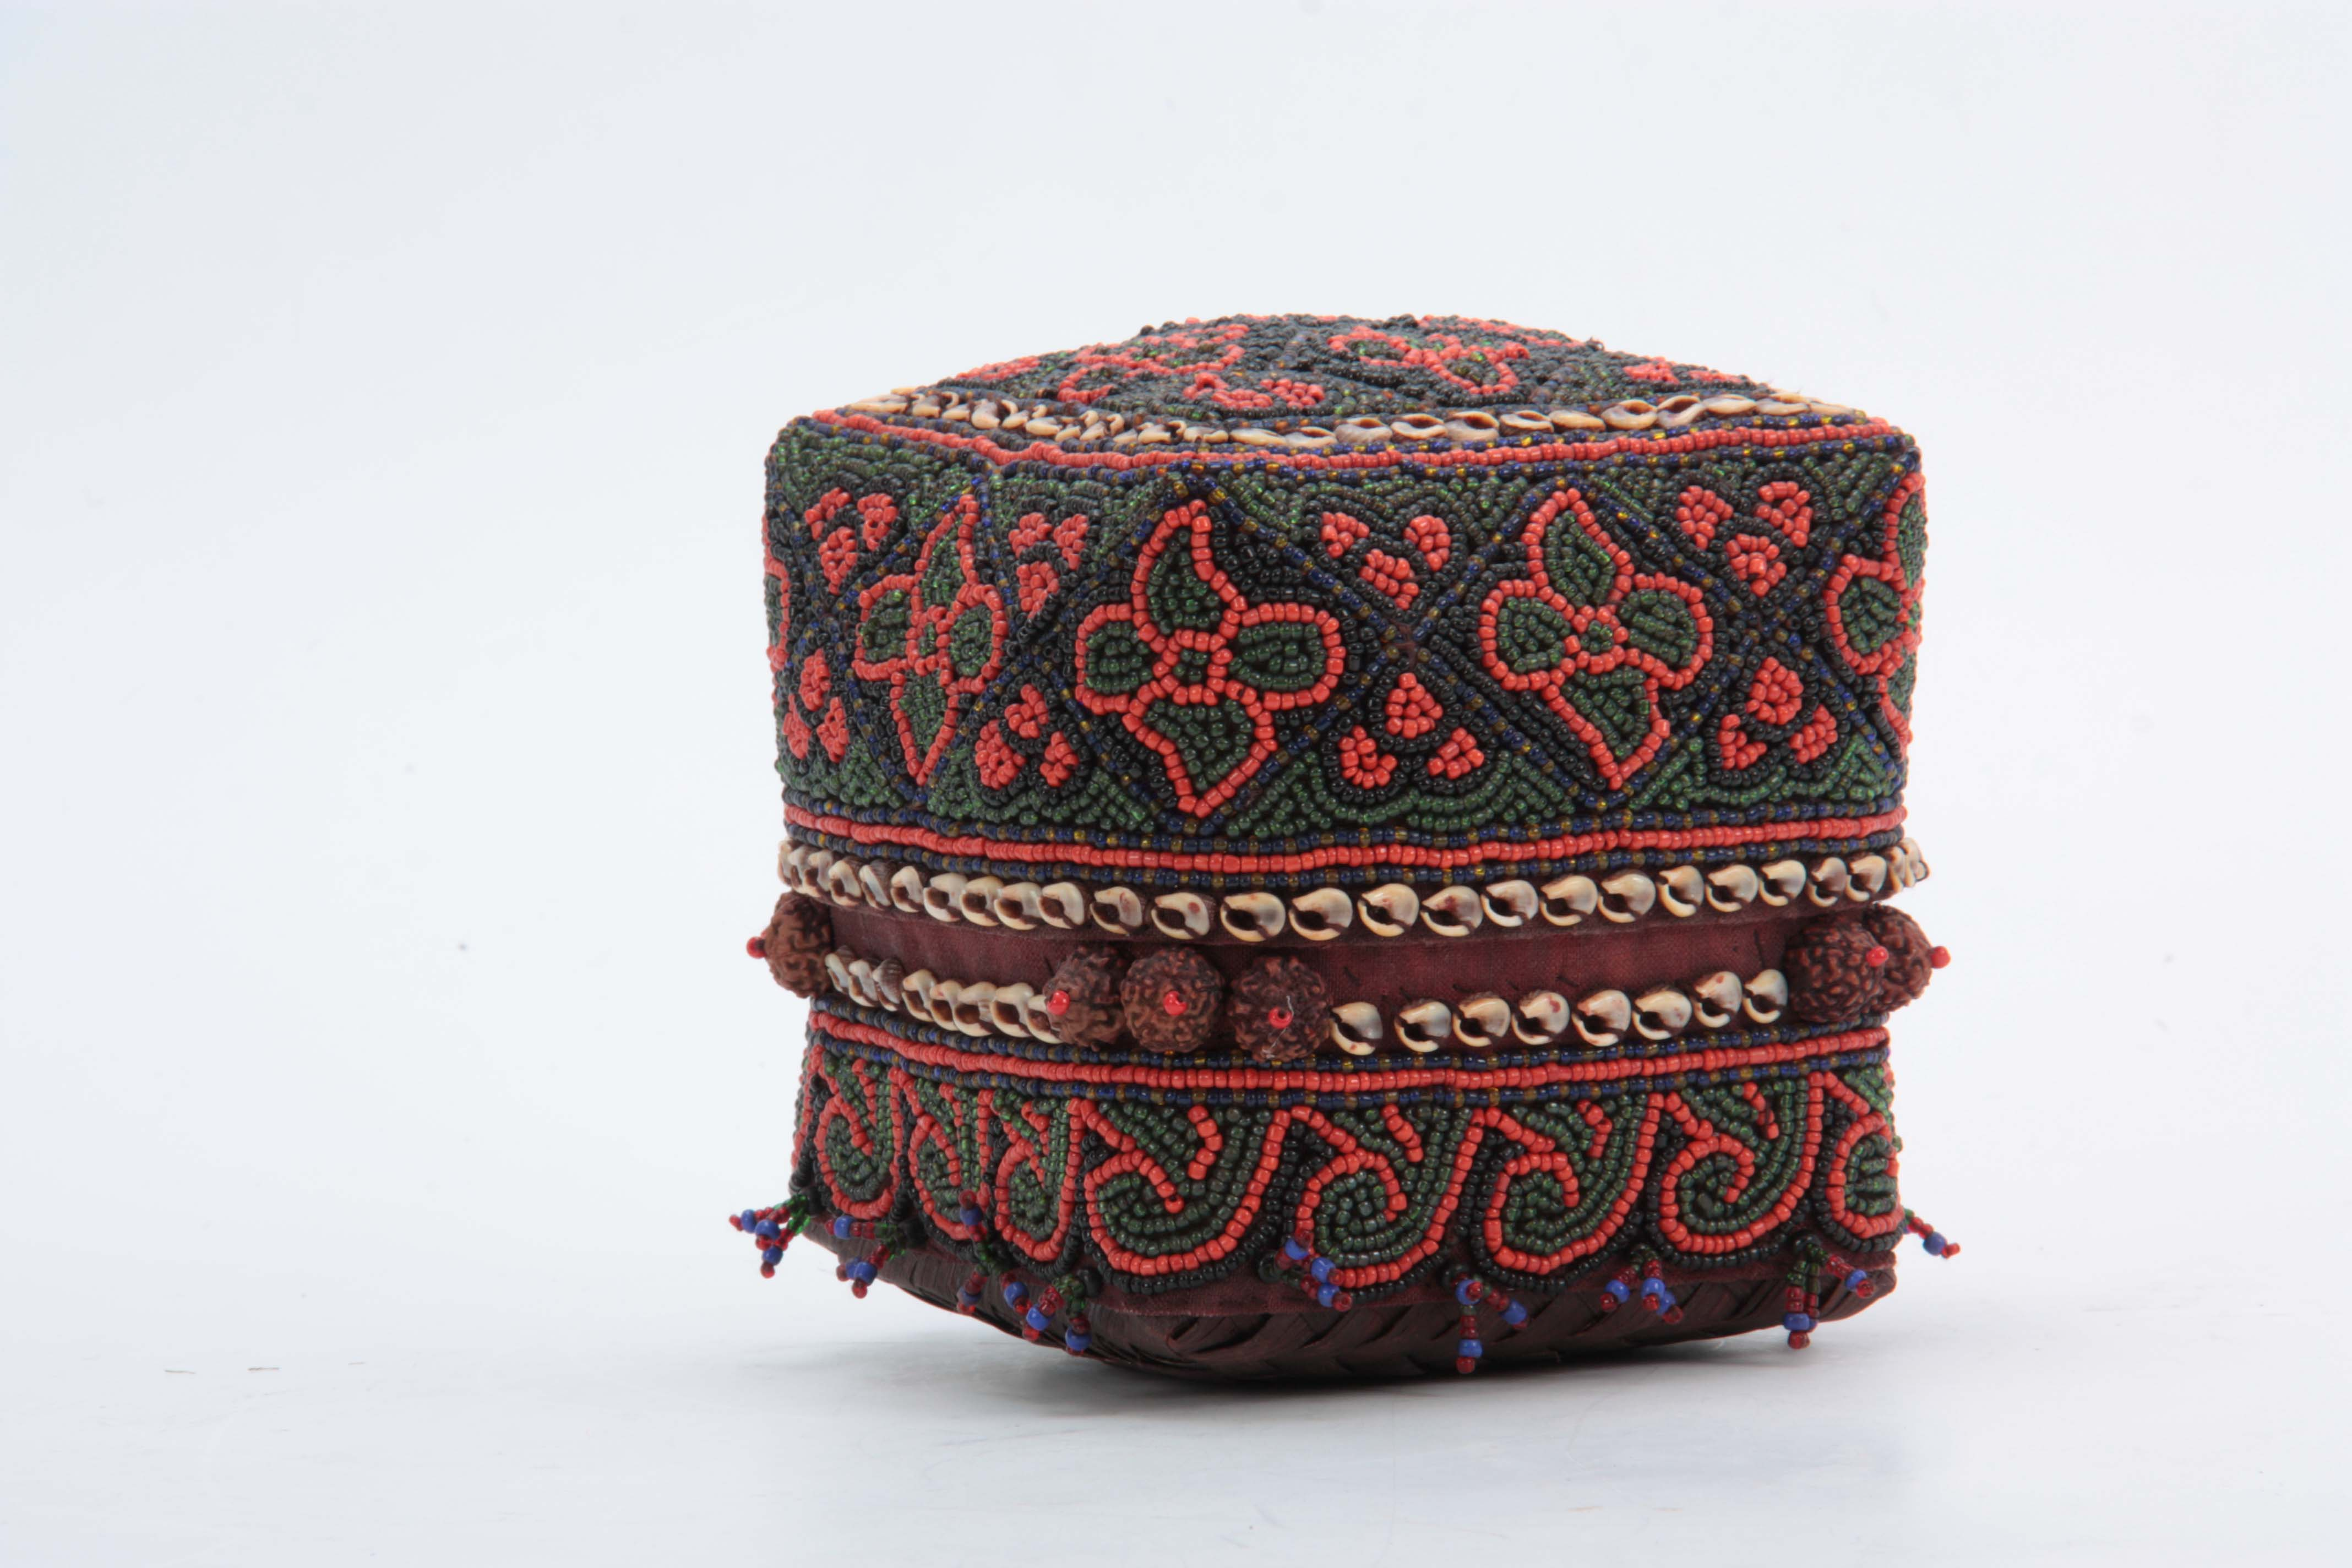 Lot 507 - A 20TH CENTURY INDONESIAN BEADED BETELNUT BOX constructed with weaved pandanus leaves with flower